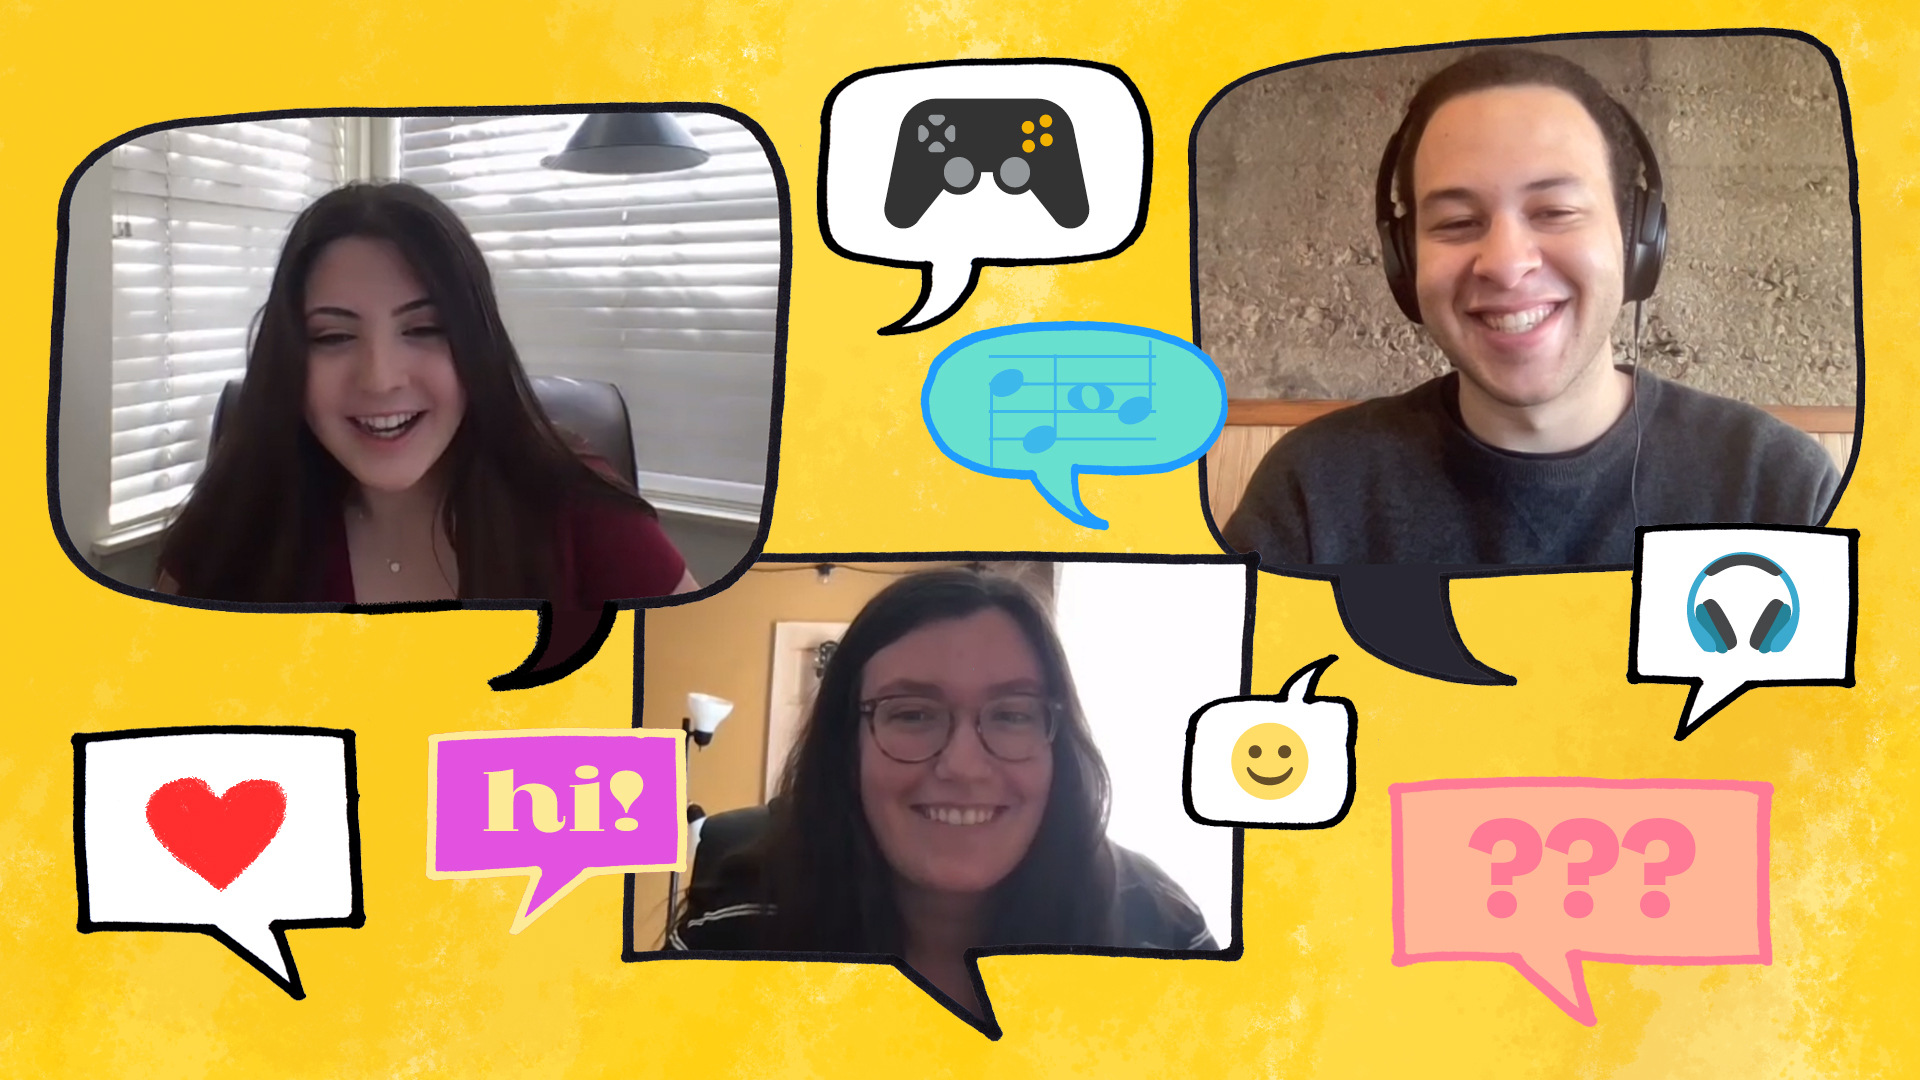 Images of three students smiling, surrounded by colorful illustrations of speech bubbles and emojis